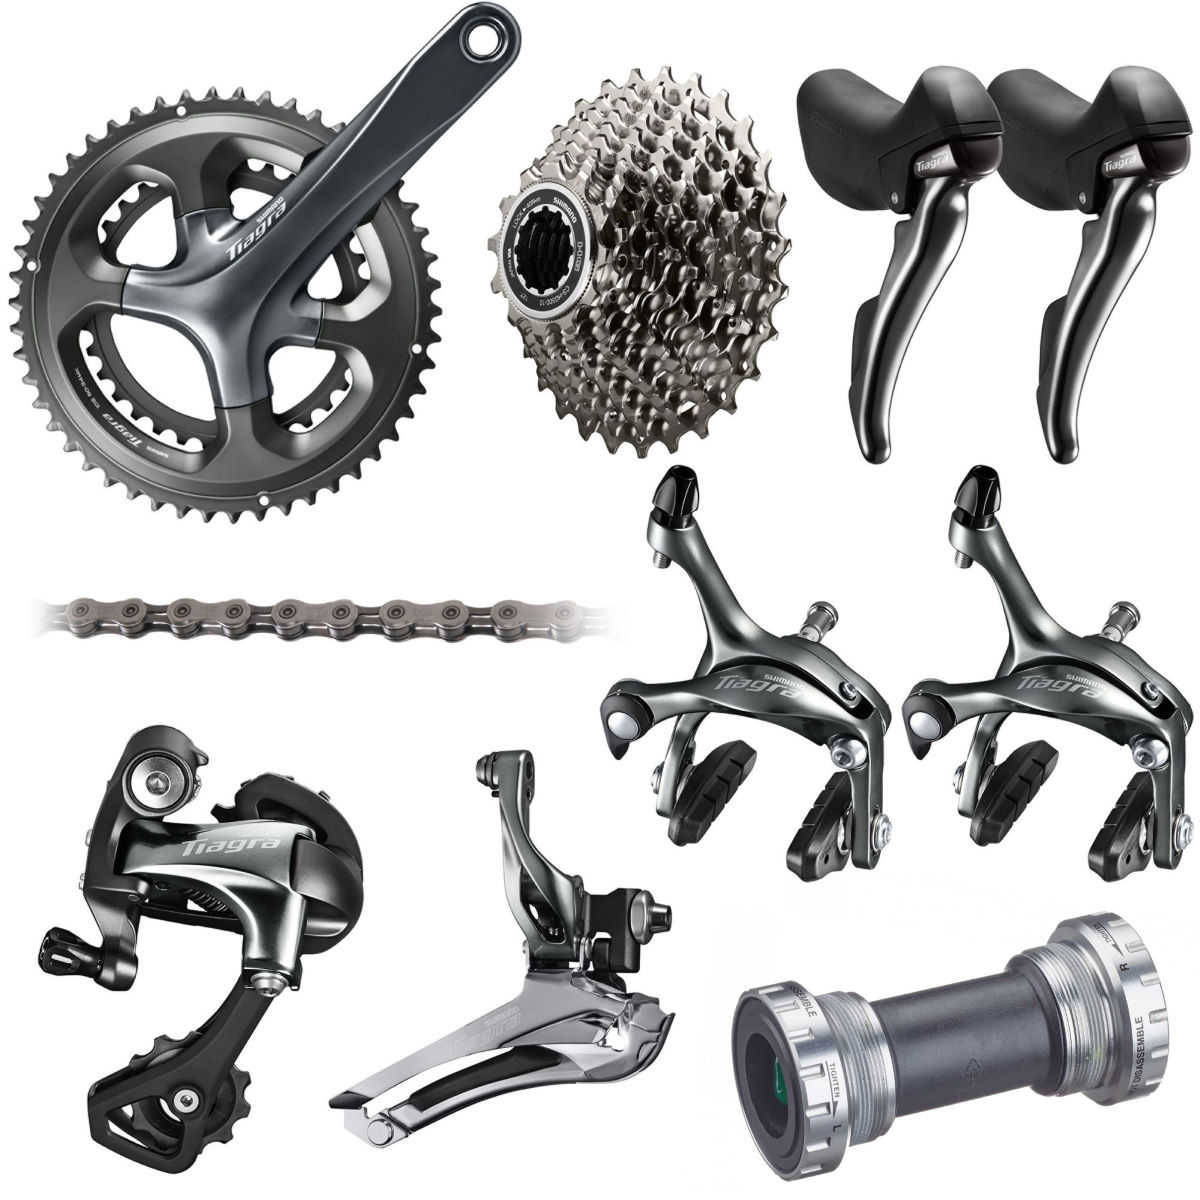 Shimano Tiagra 4700 10 Speed Groupset - Grupos completos